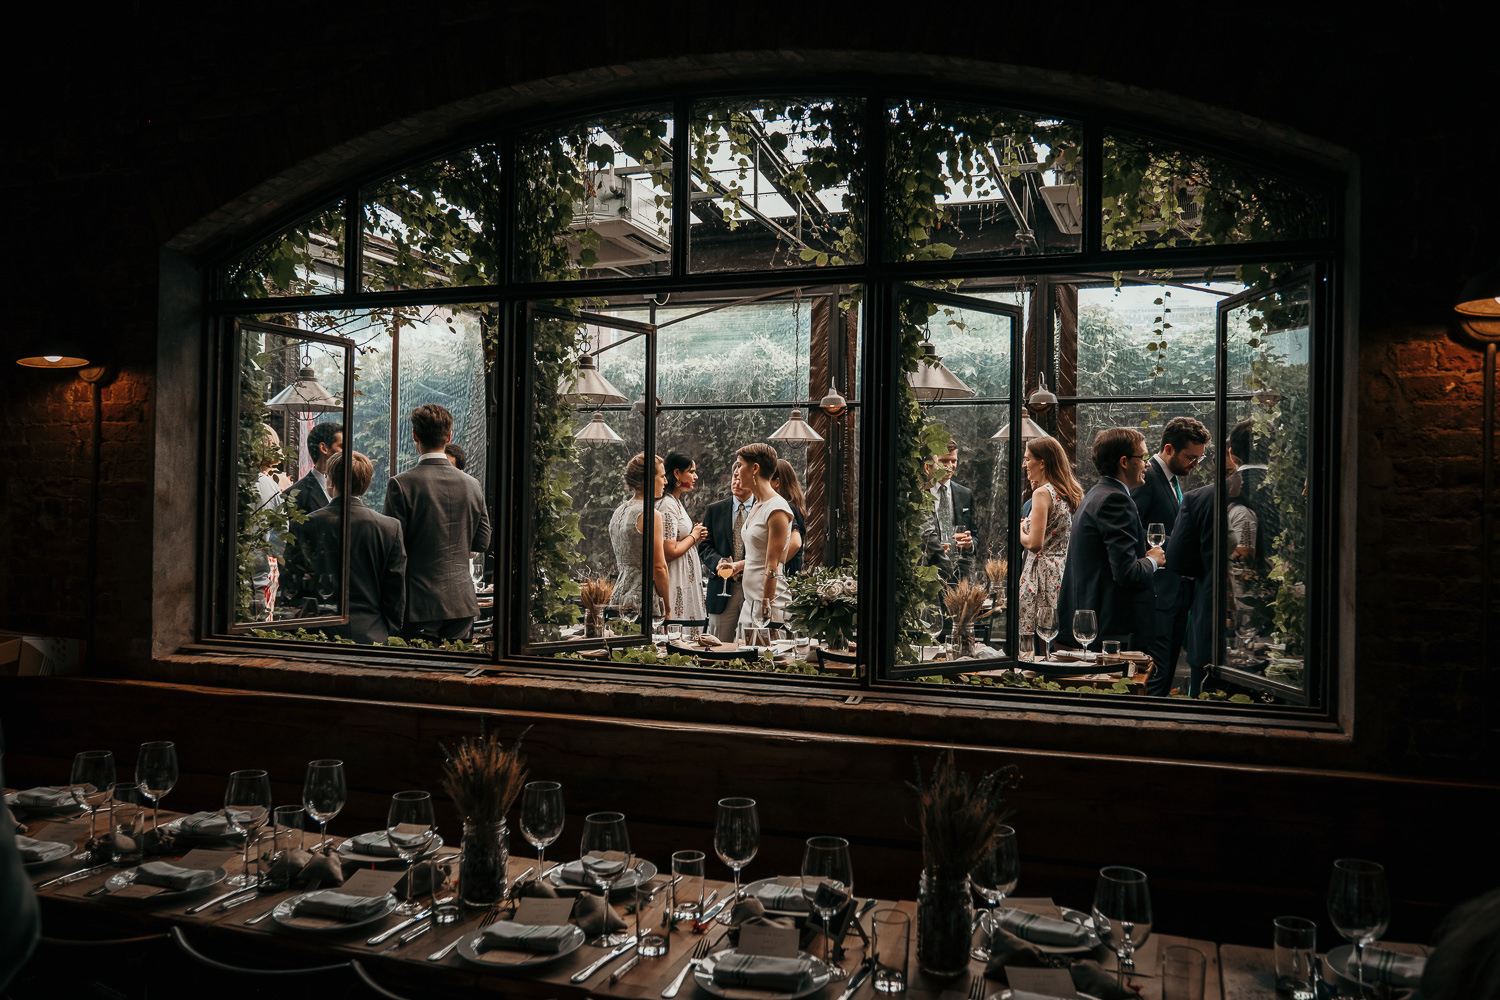 inside restaurant looking out at all the wedding guests thru windows covered in vines